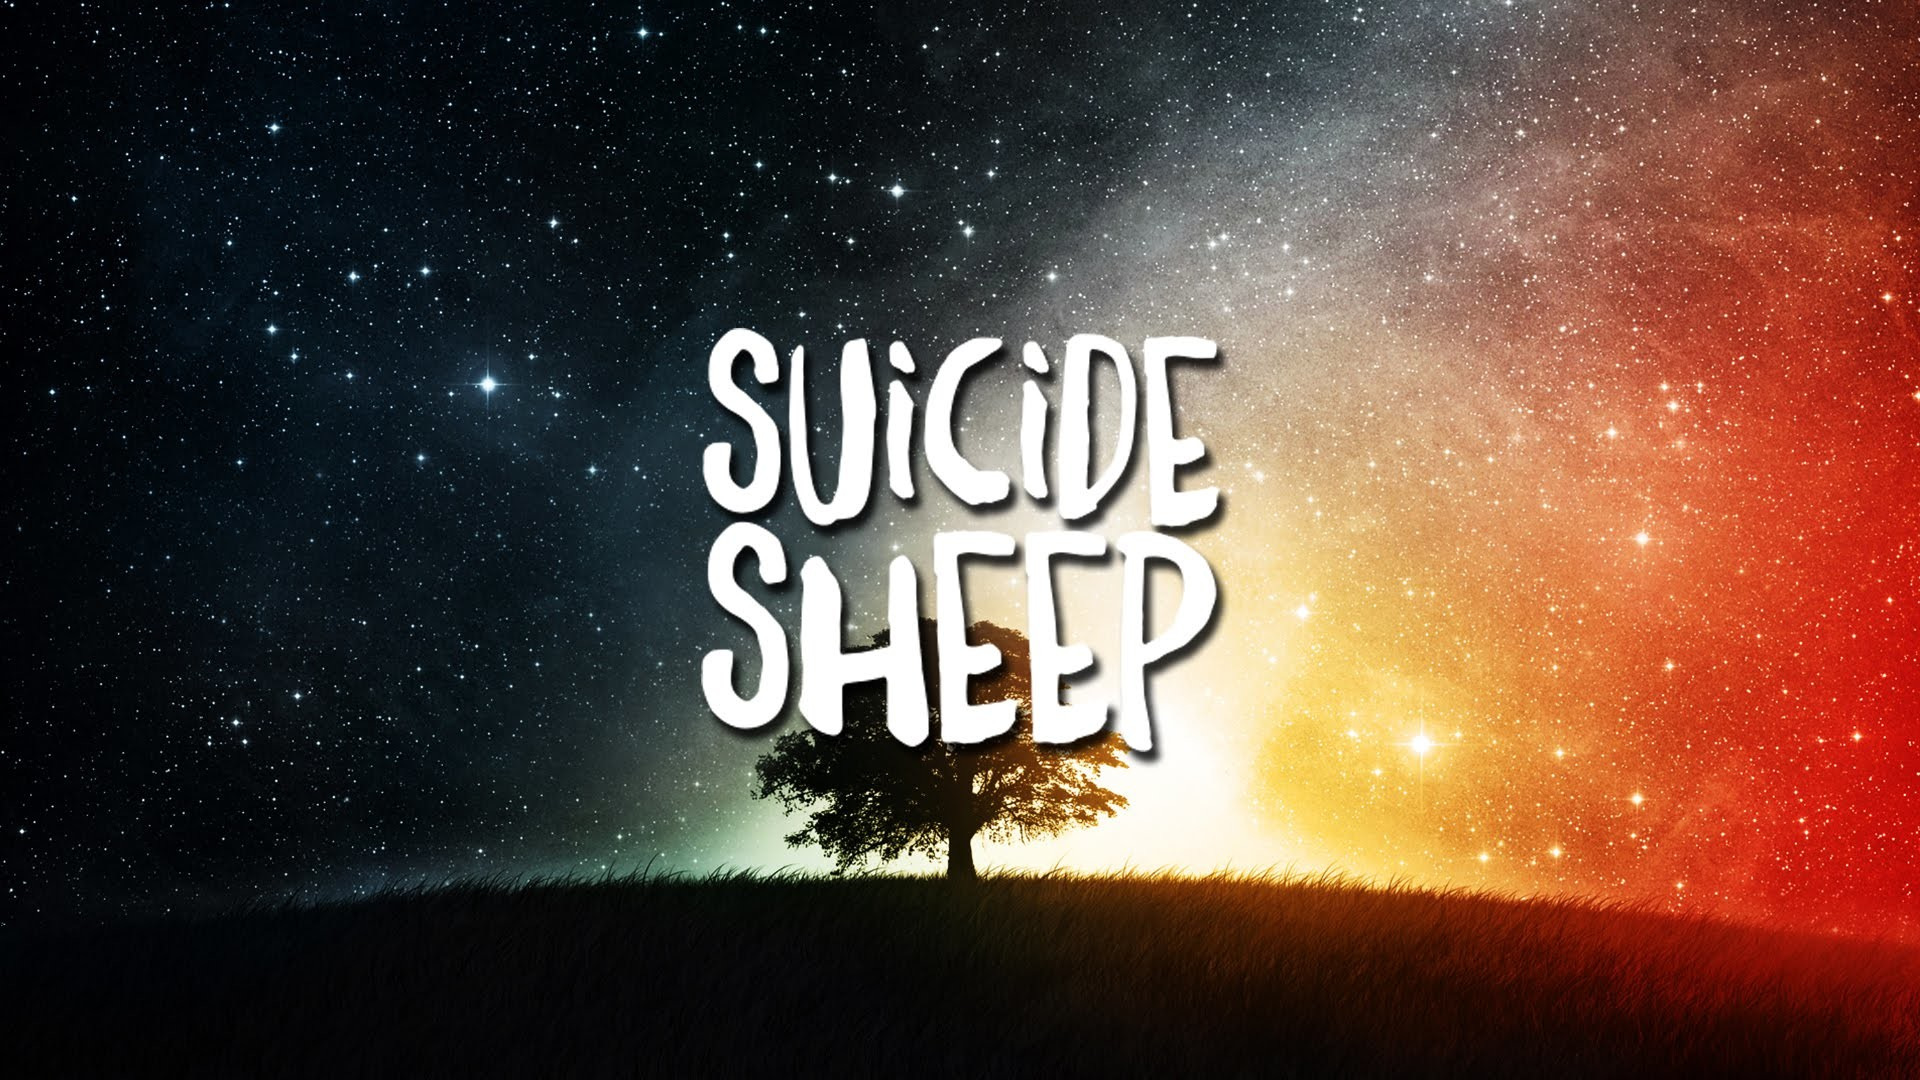 Mr Suicide Sheep Wallpapers Space